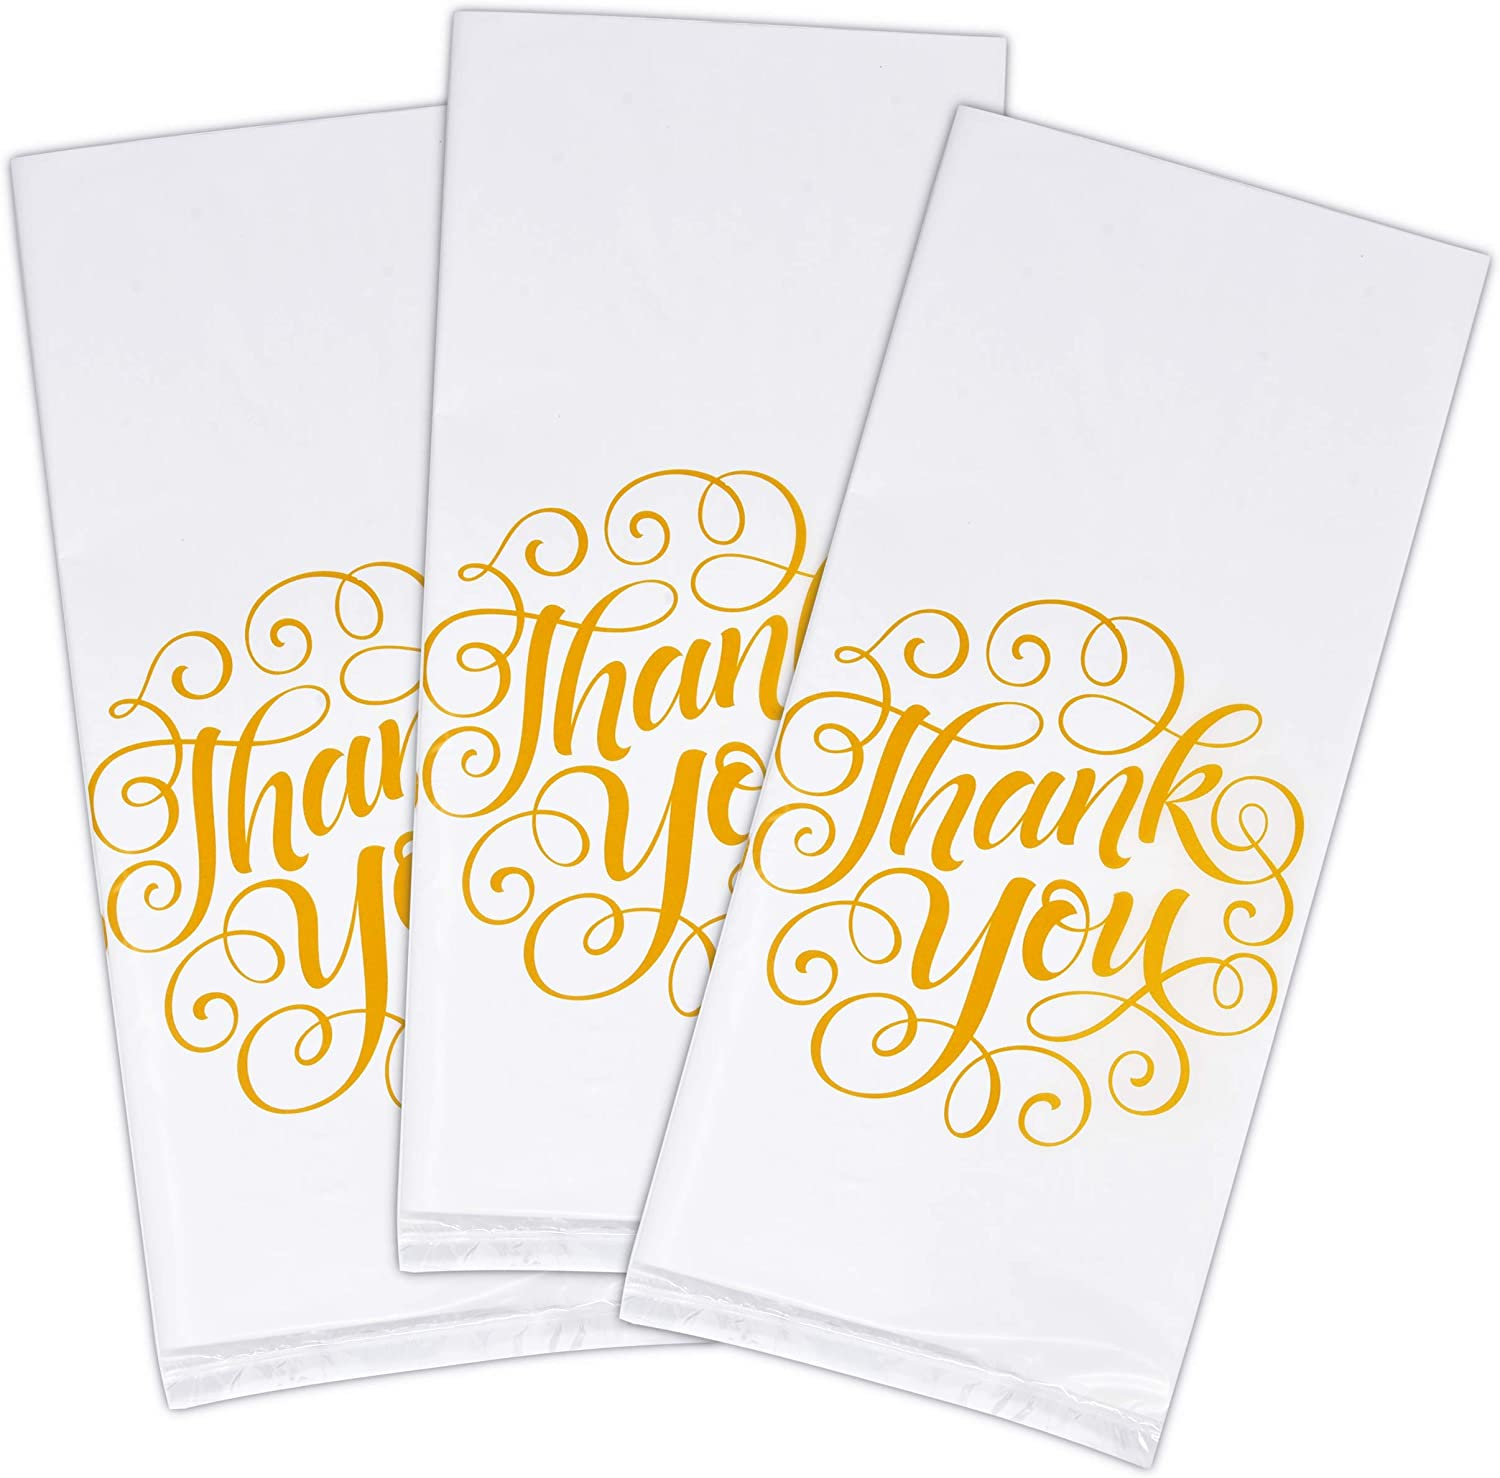 100 Thank You Cellophane Bags Wedding Plastic Treat Favor Bag White with Gold Anniversary Baby Shower /& Birthday Party Supplies Decorations for Adults Teens Kids Candy Goody Grab Bag by Gift Boutique